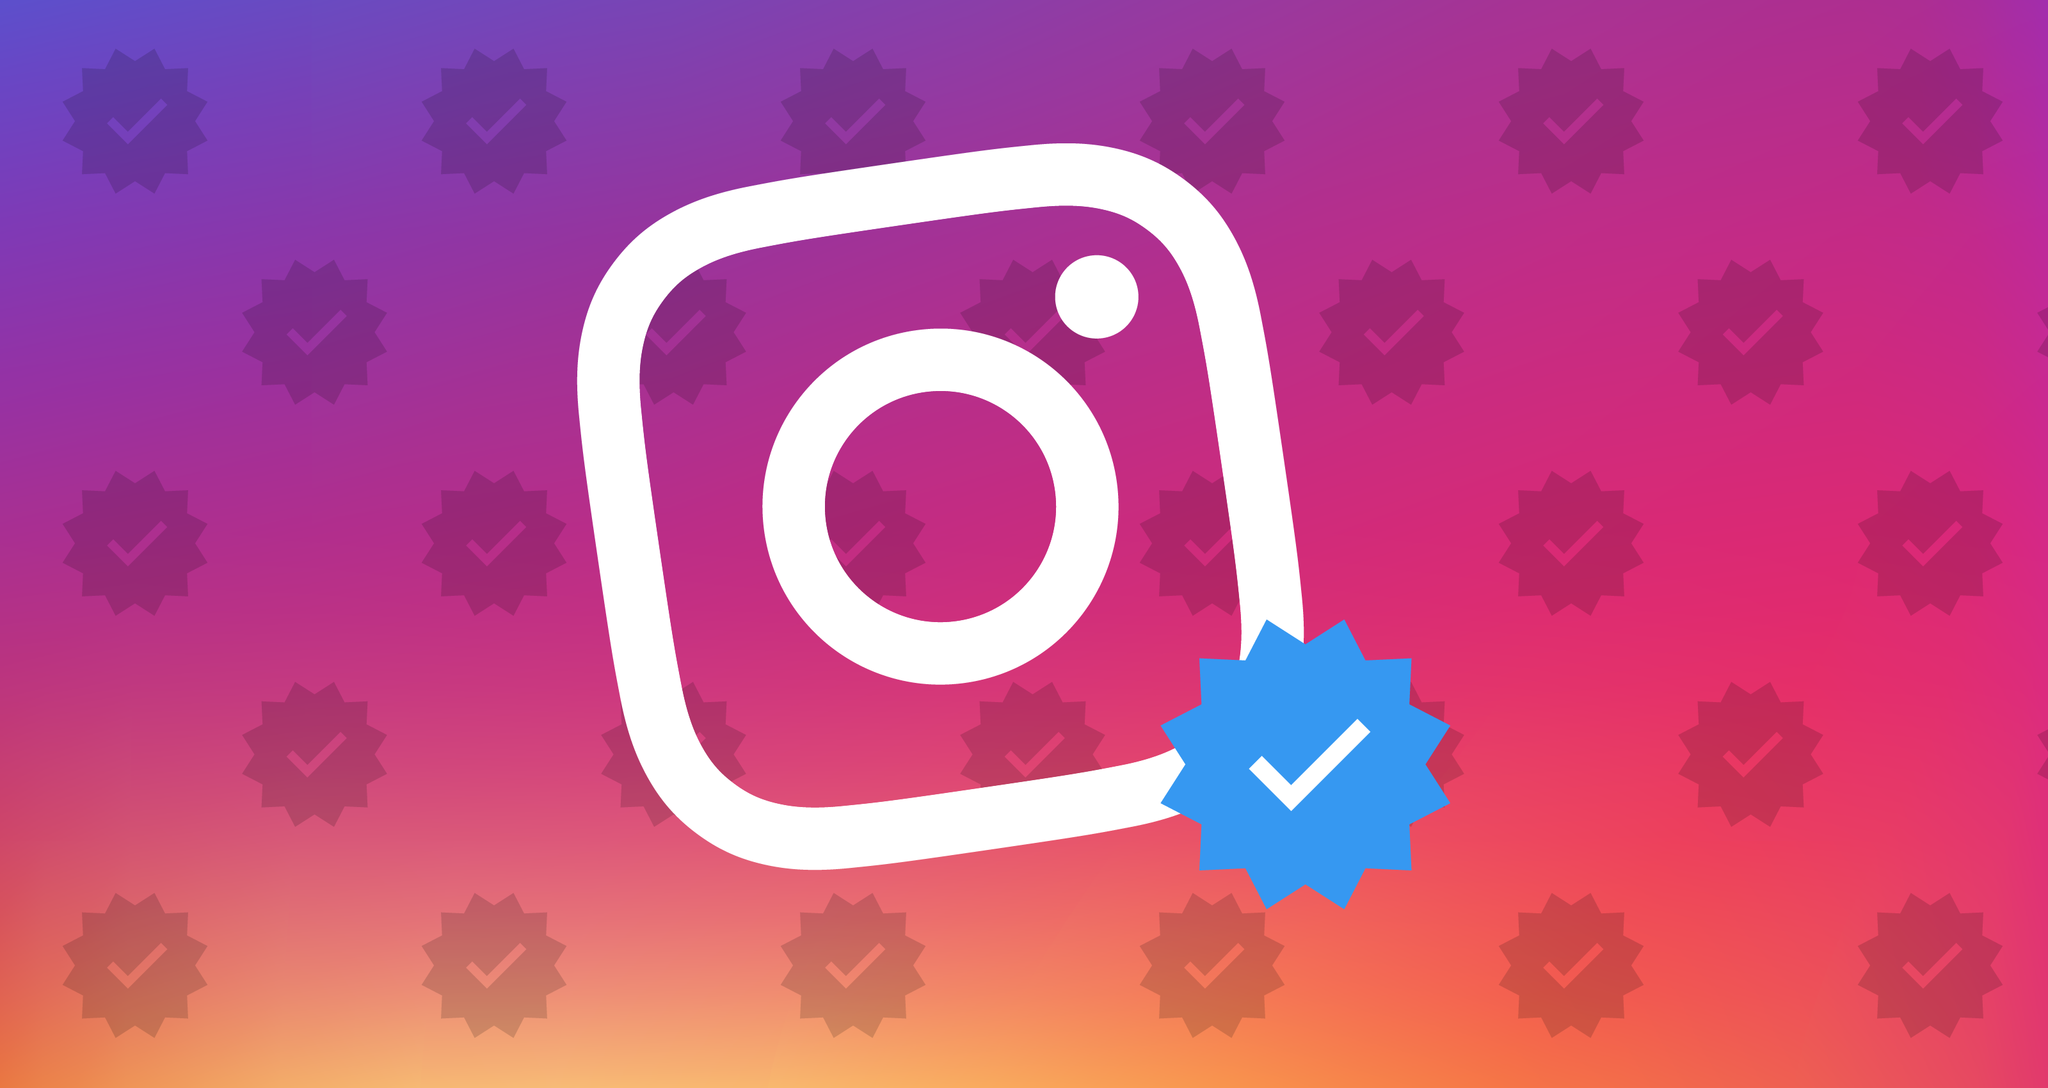 You can now apply to get a verified badge on Instagram ... Application Form For Blue Badge Holder on